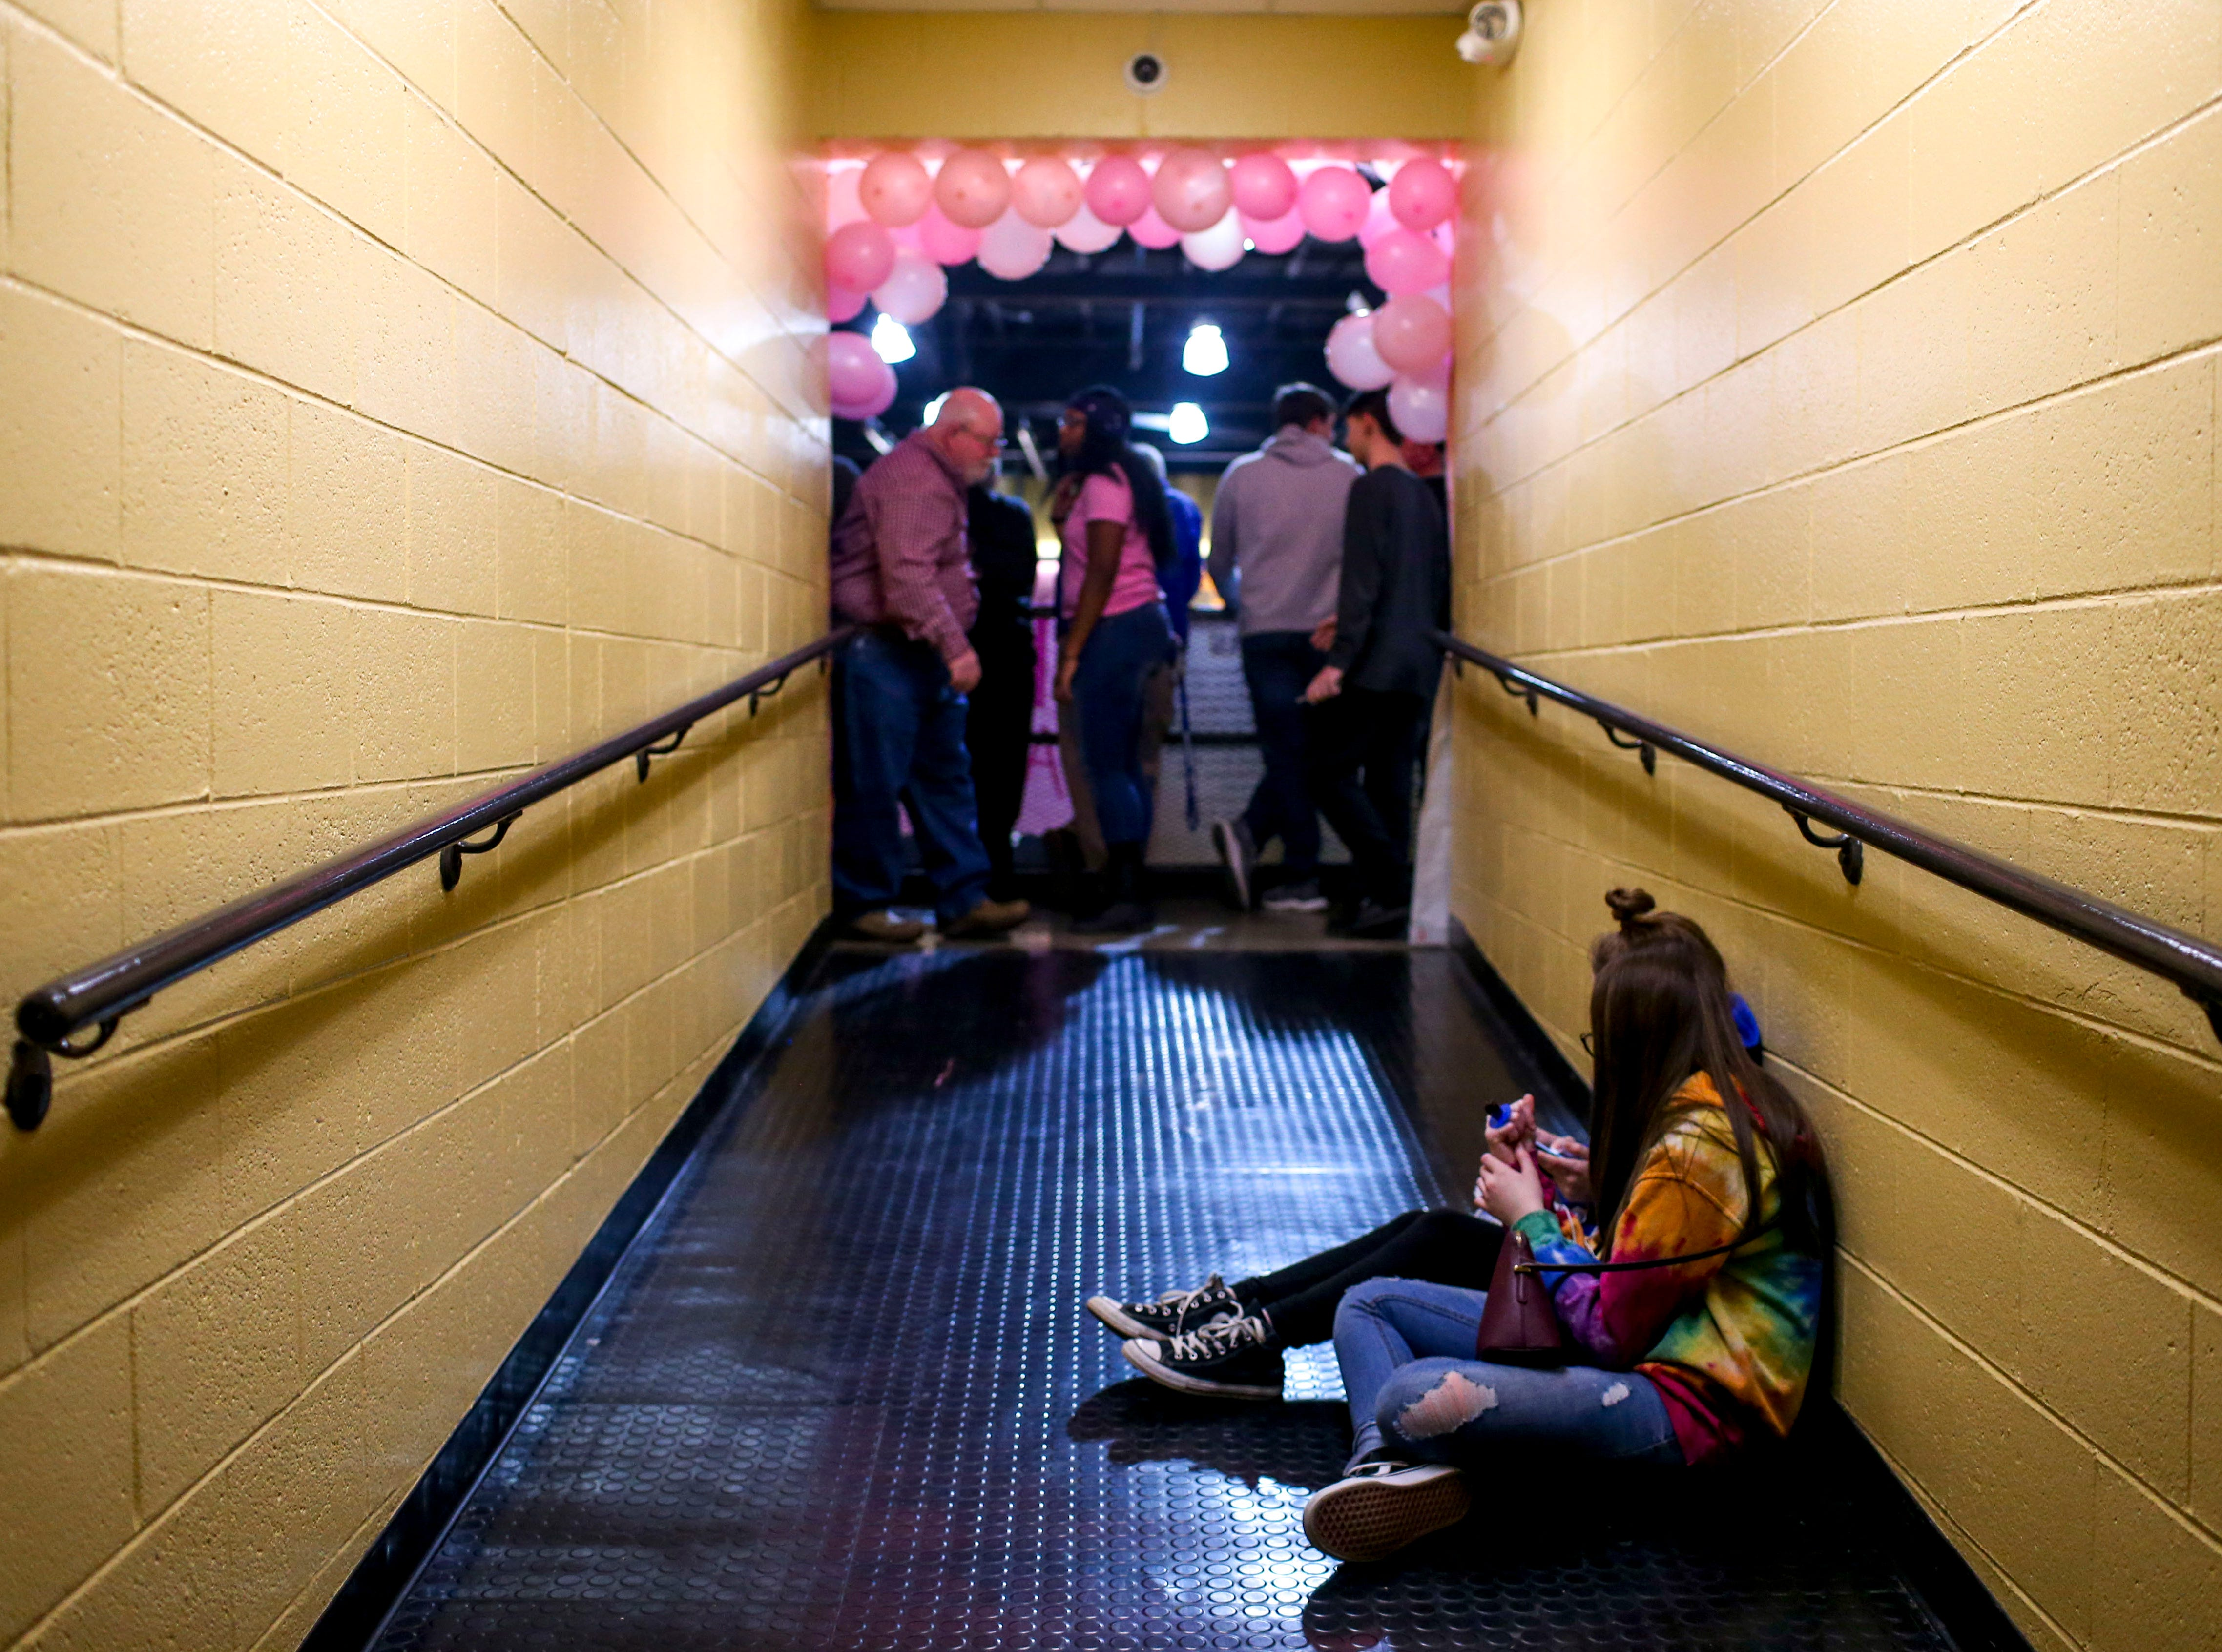 Game attendees hang out in a side hallway before the start of a TSSAA basketball game between Peabody and Gibson County at Peabody High School in Trenton, Tenn., on Friday, Feb. 8, 2019.